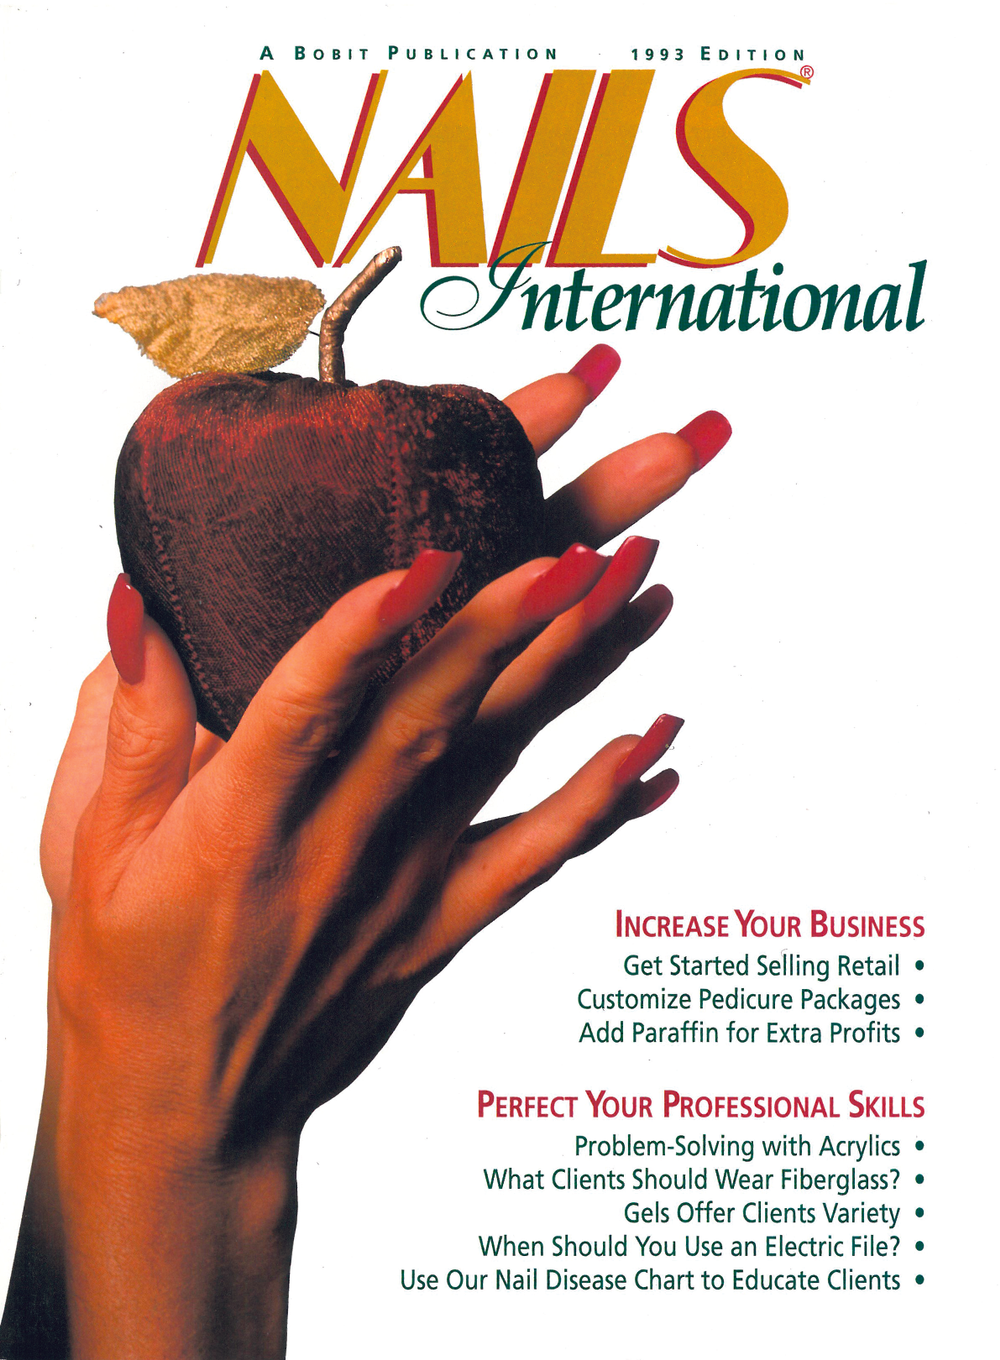 <p><strong>1992</strong>: NAILS launches an international edition, which we published through 1996.</p>